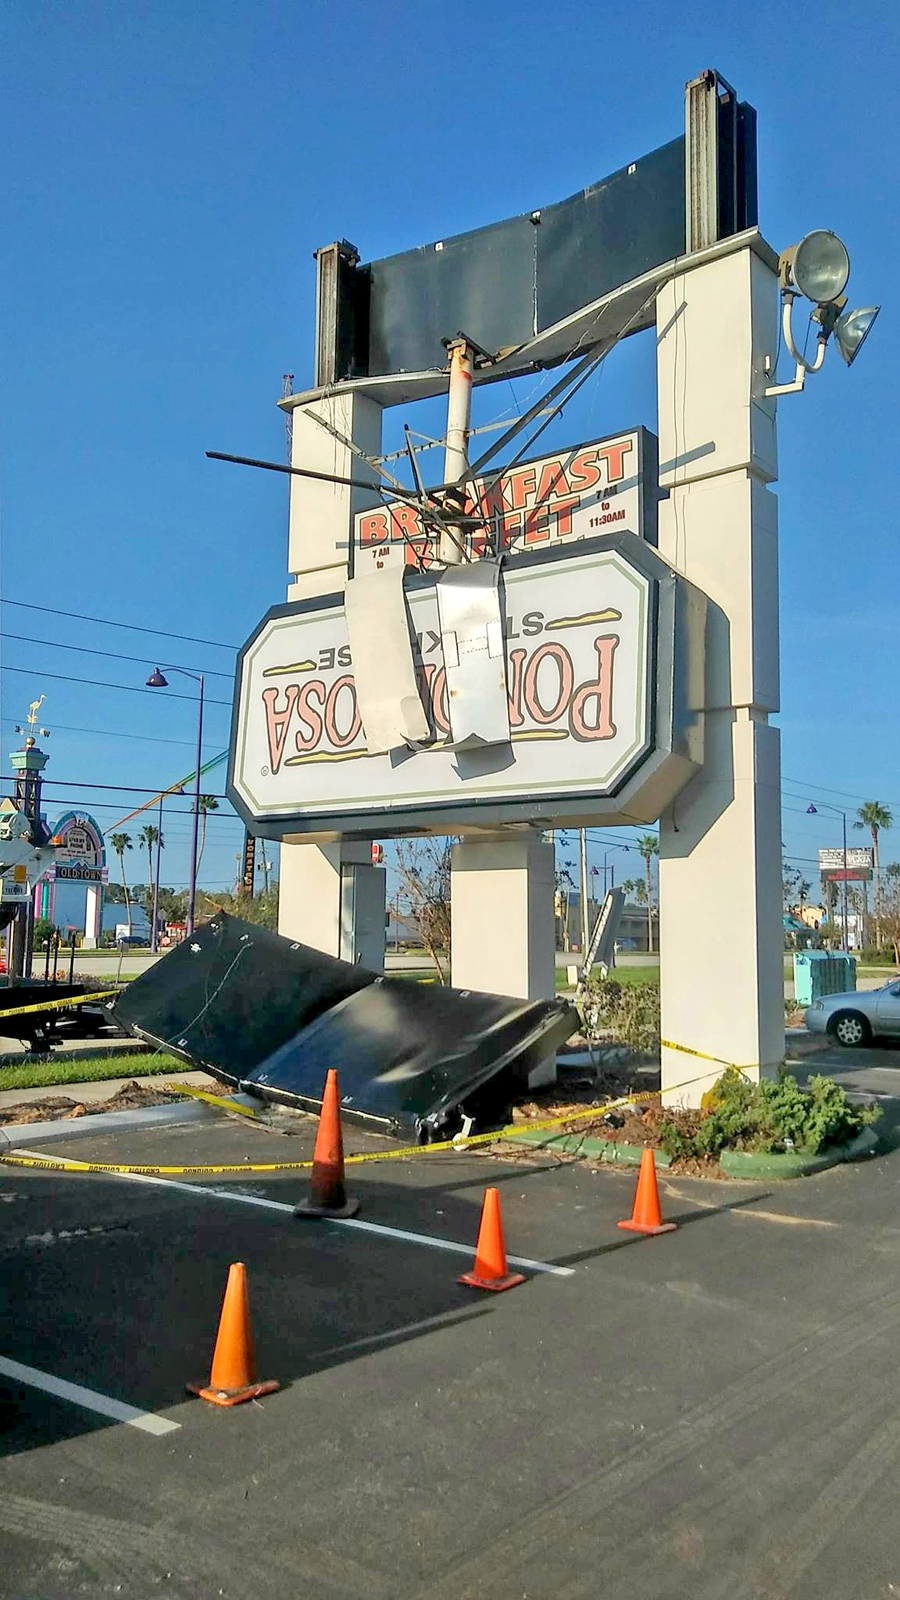 A sign damaged by Hurricane Irma.